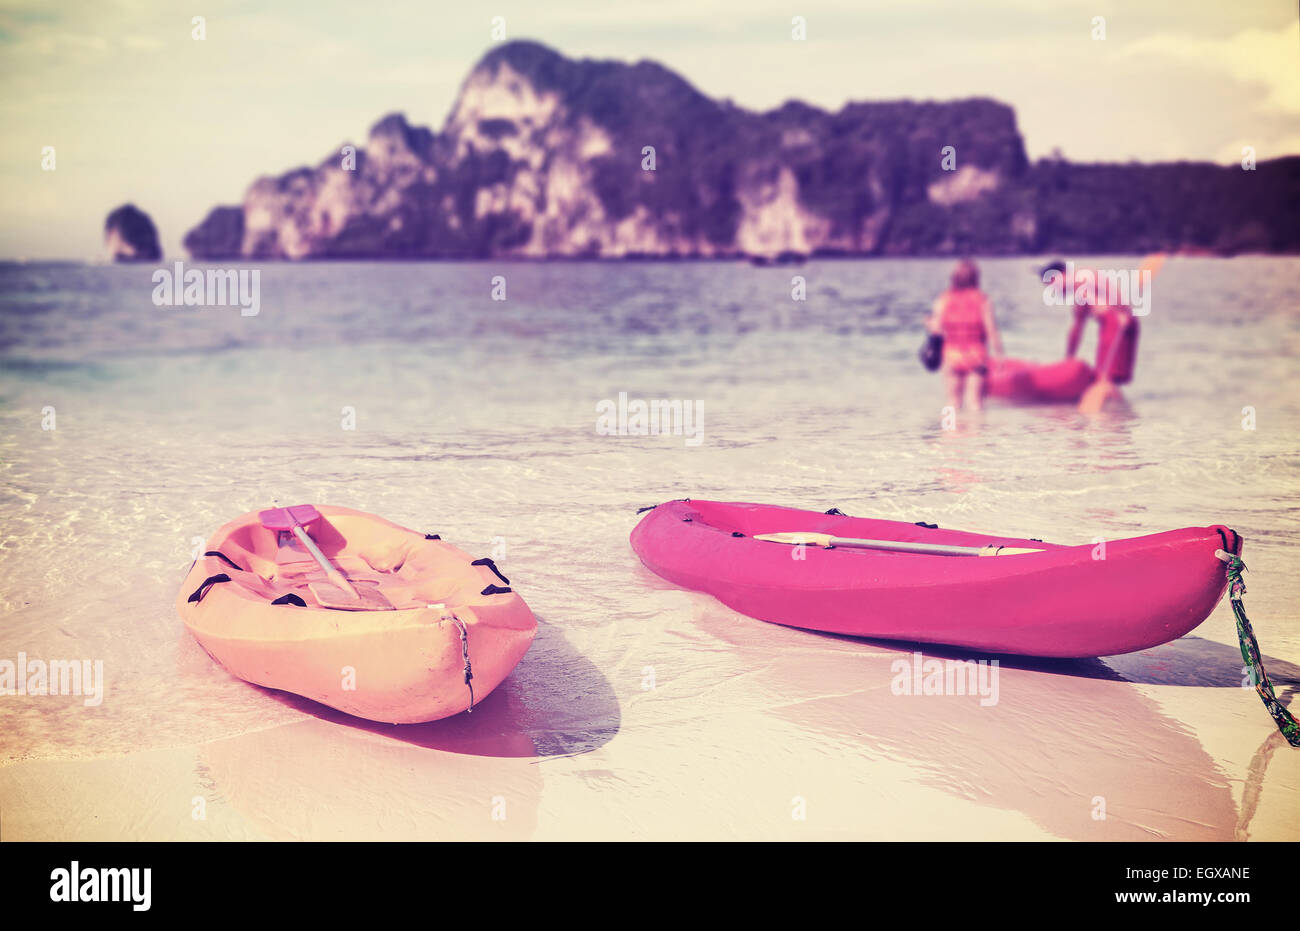 Retro filtered kayaks on a tropical beach, shallow depth of field. Active holidays background. - Stock Image